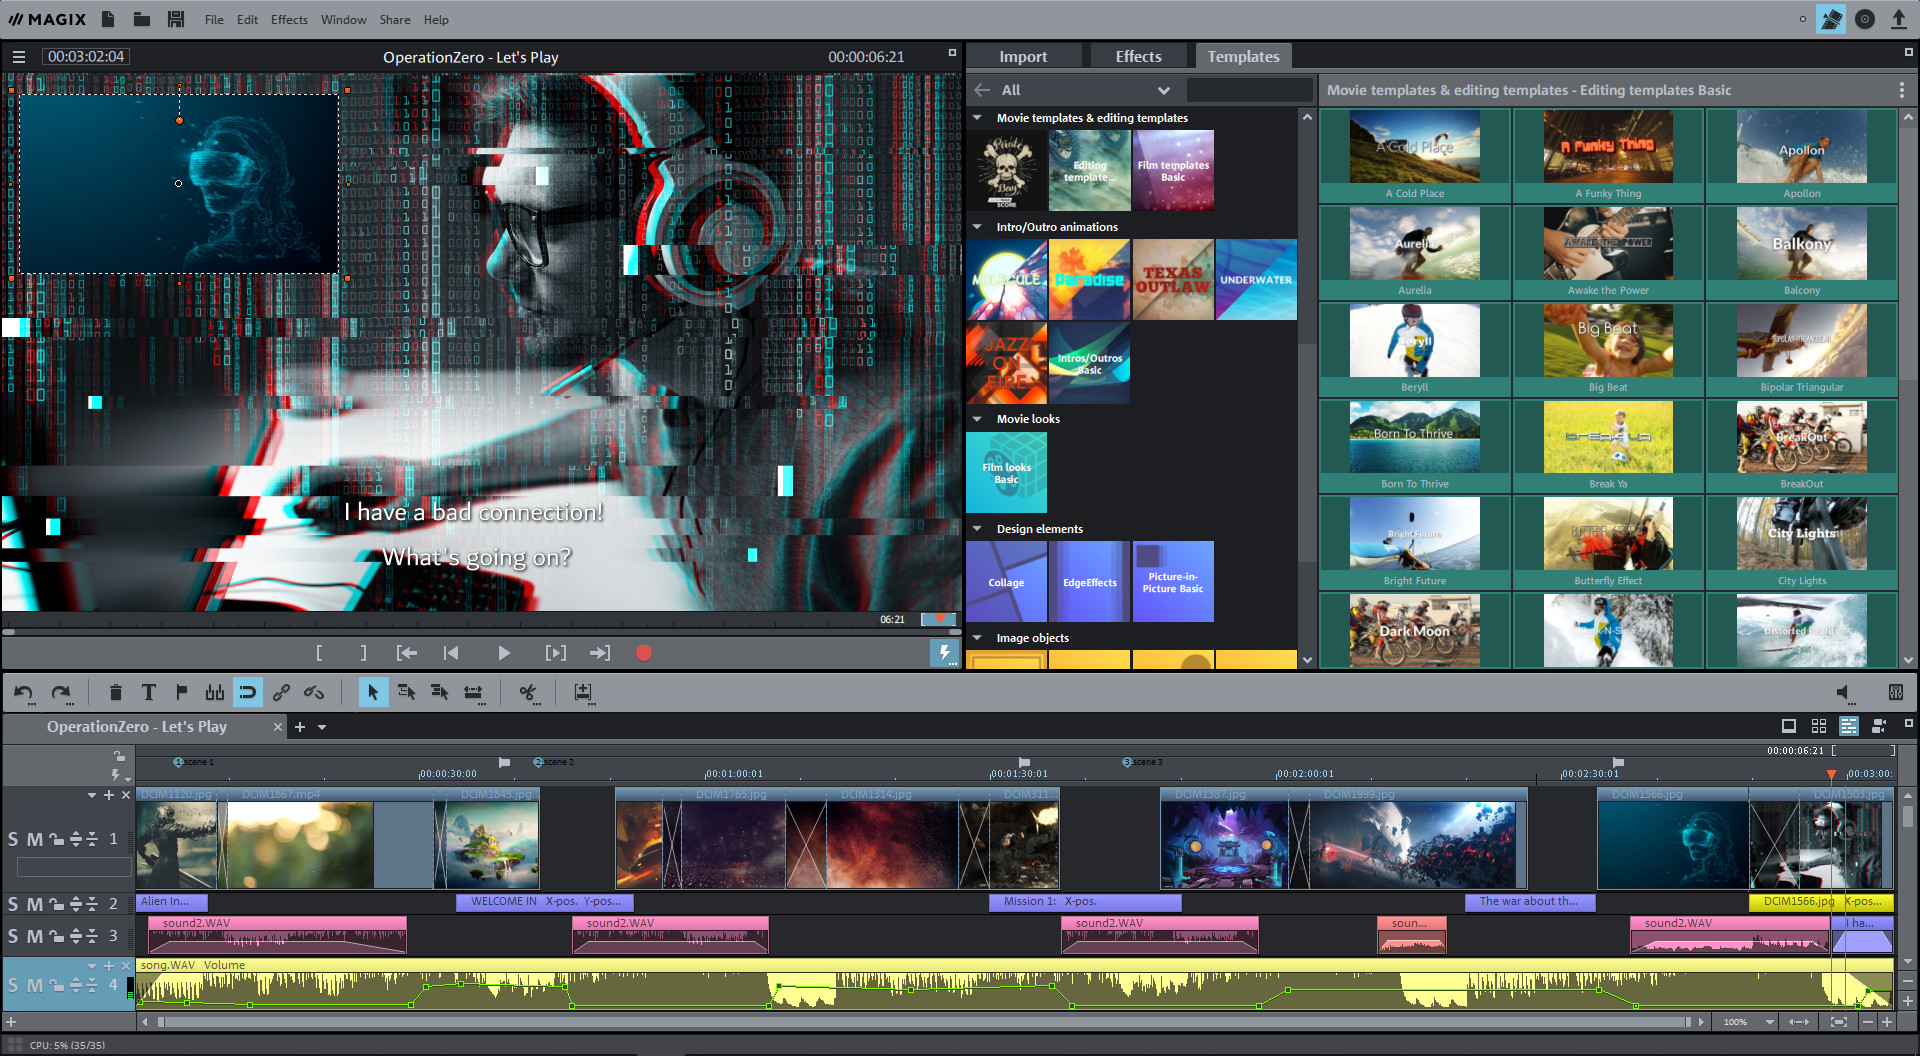 MAGIX Video Pro X Crack 17.0.1.31 Full Serial Key